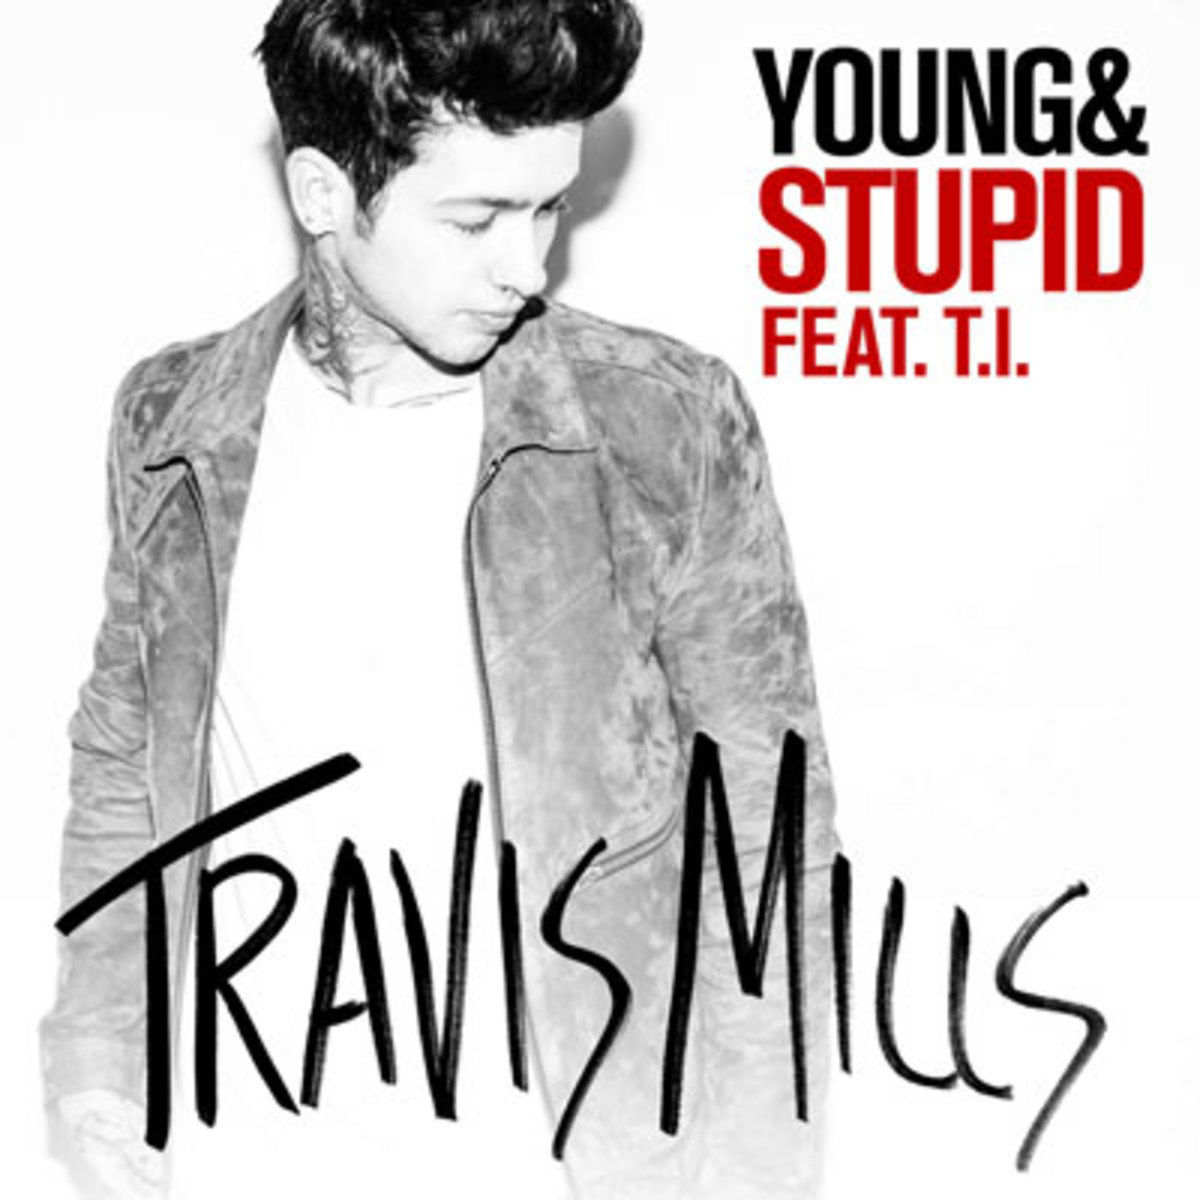 t-mills-young-and-stupid.jpg